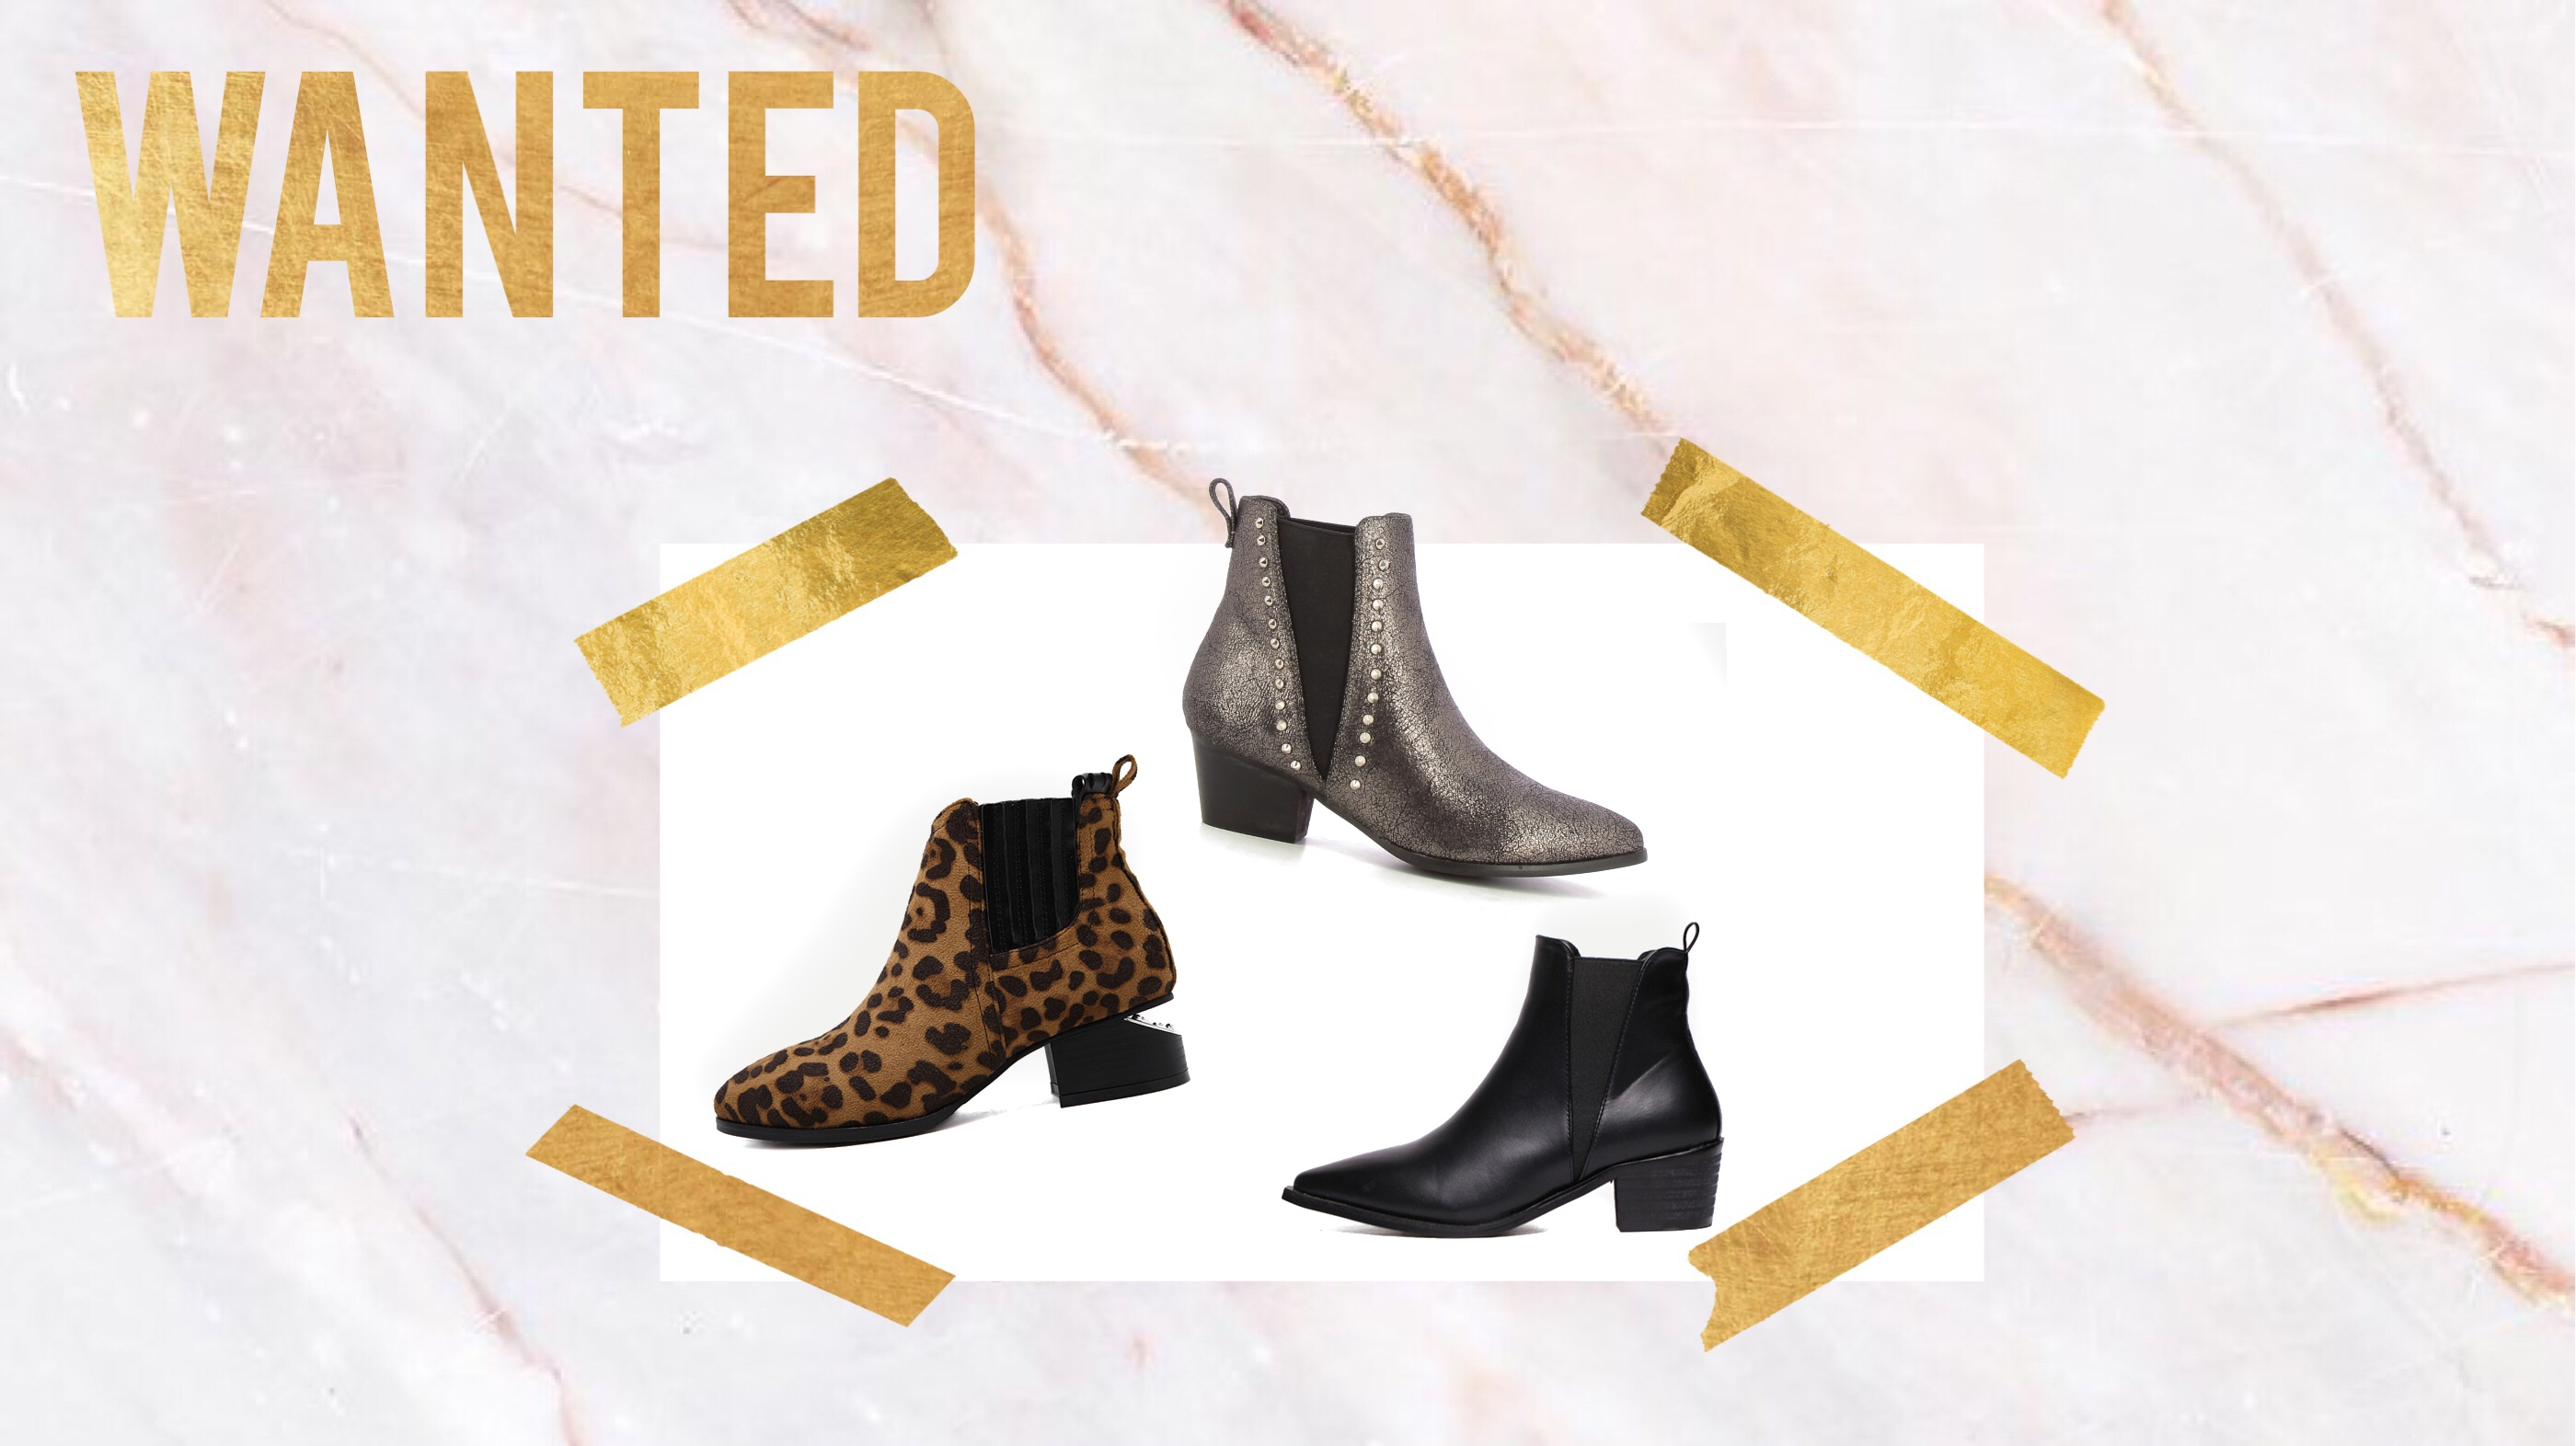 * WANTED * Des bottines plates tendances